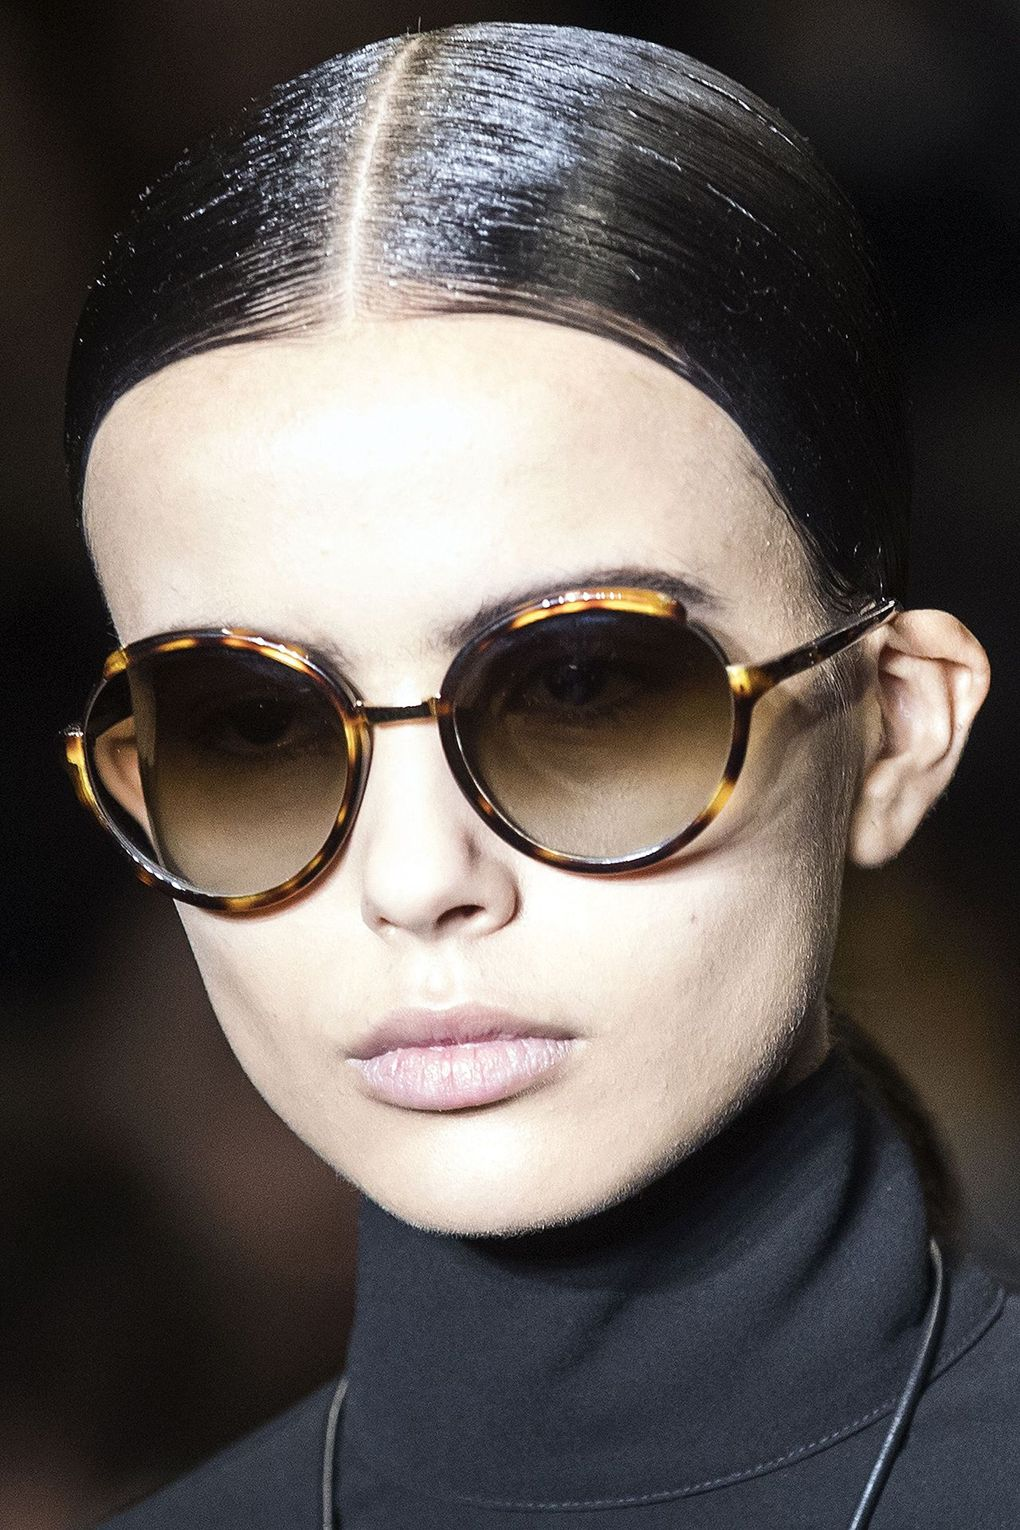 The City: Paris The Show: Loewe The Look: Slicked-back hair and centre partings